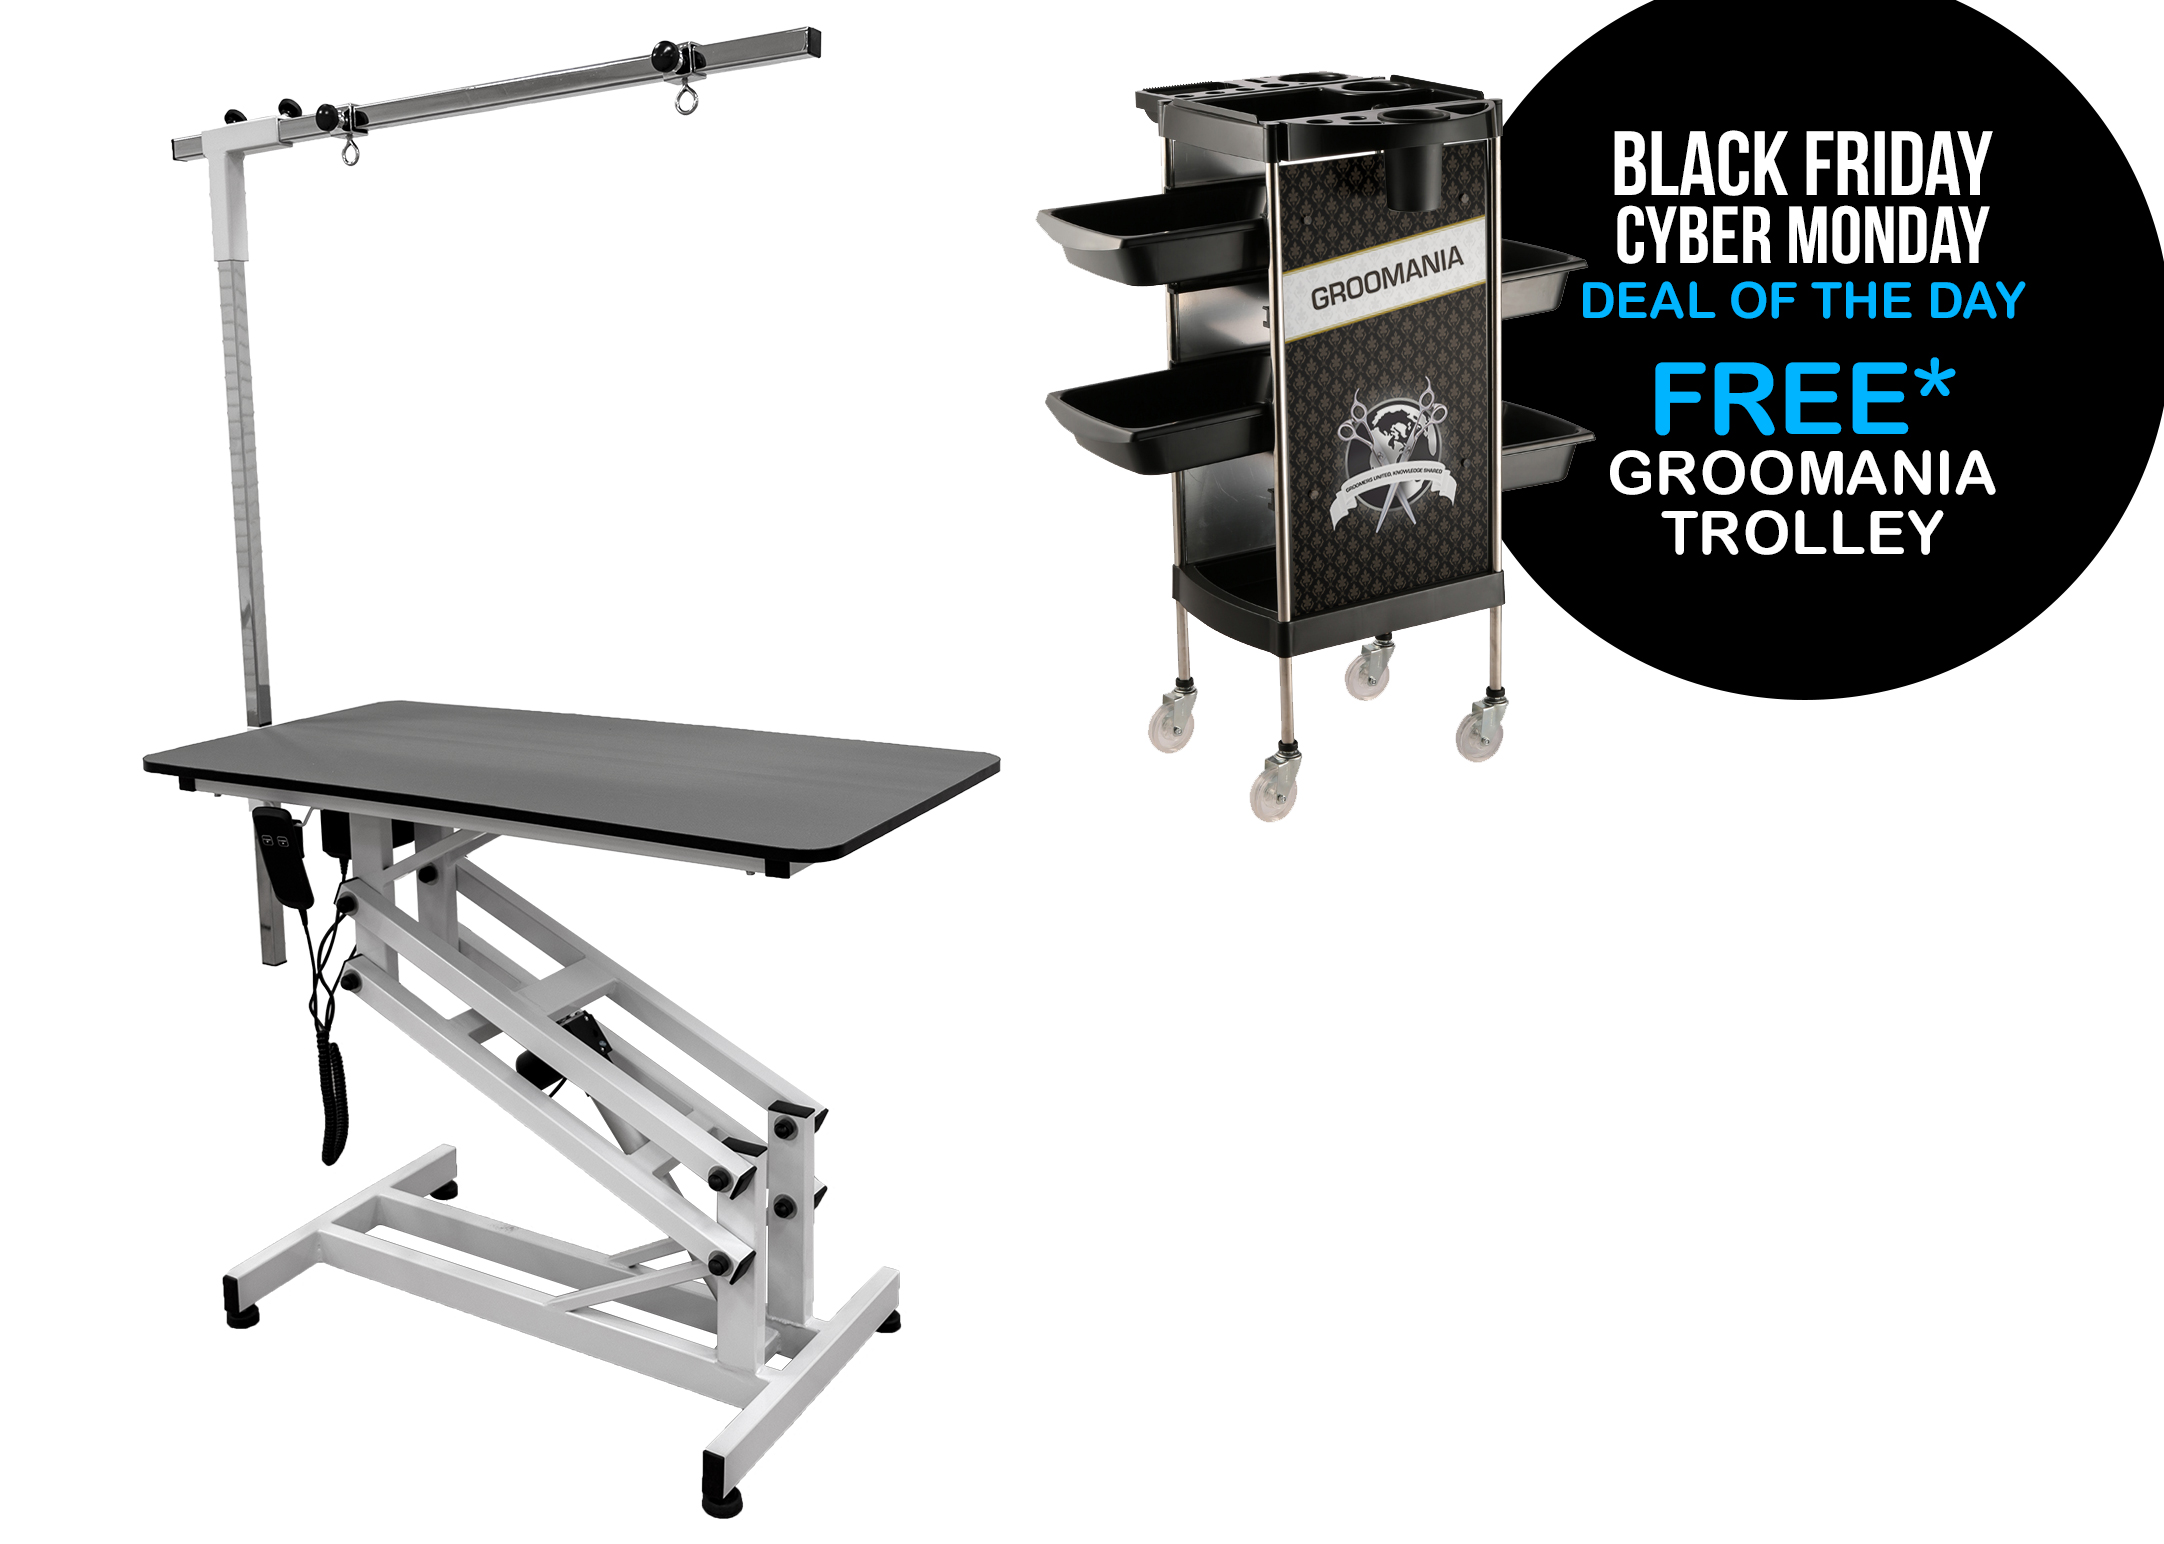 BLACK FRIDAY PROMO - Groom-X START Electric Table + post Grey 110x60x47,5-106cm Professional Grooming Table + FREE DEMO Groom-X Trolley Black Groomania - material cart